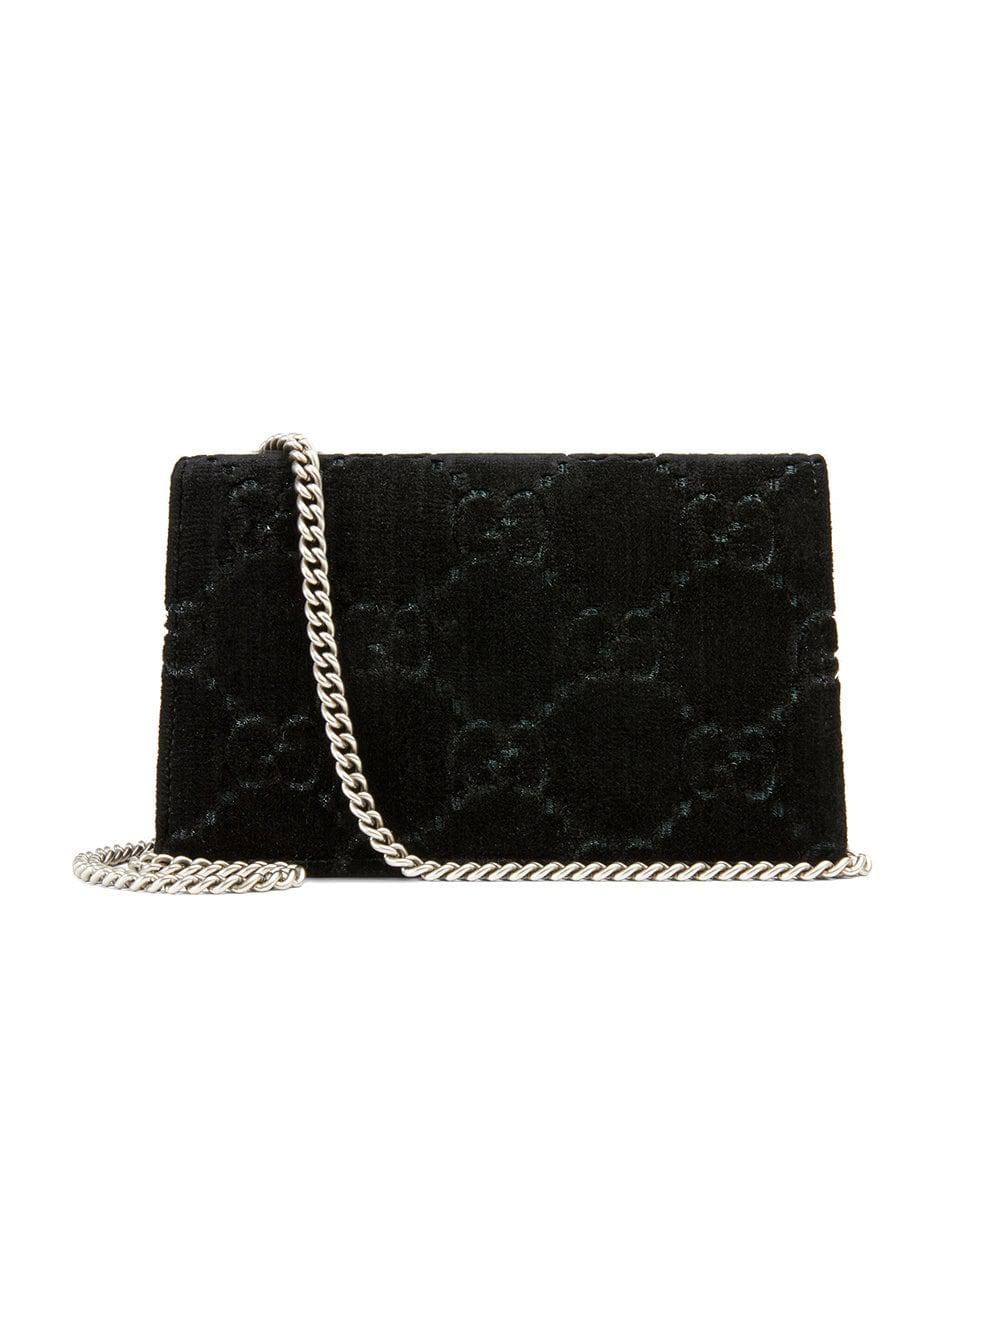 d7c6cee06c9 Gucci Black Dionysus Super Mini Leather Bag in Black - Save 1% - Lyst